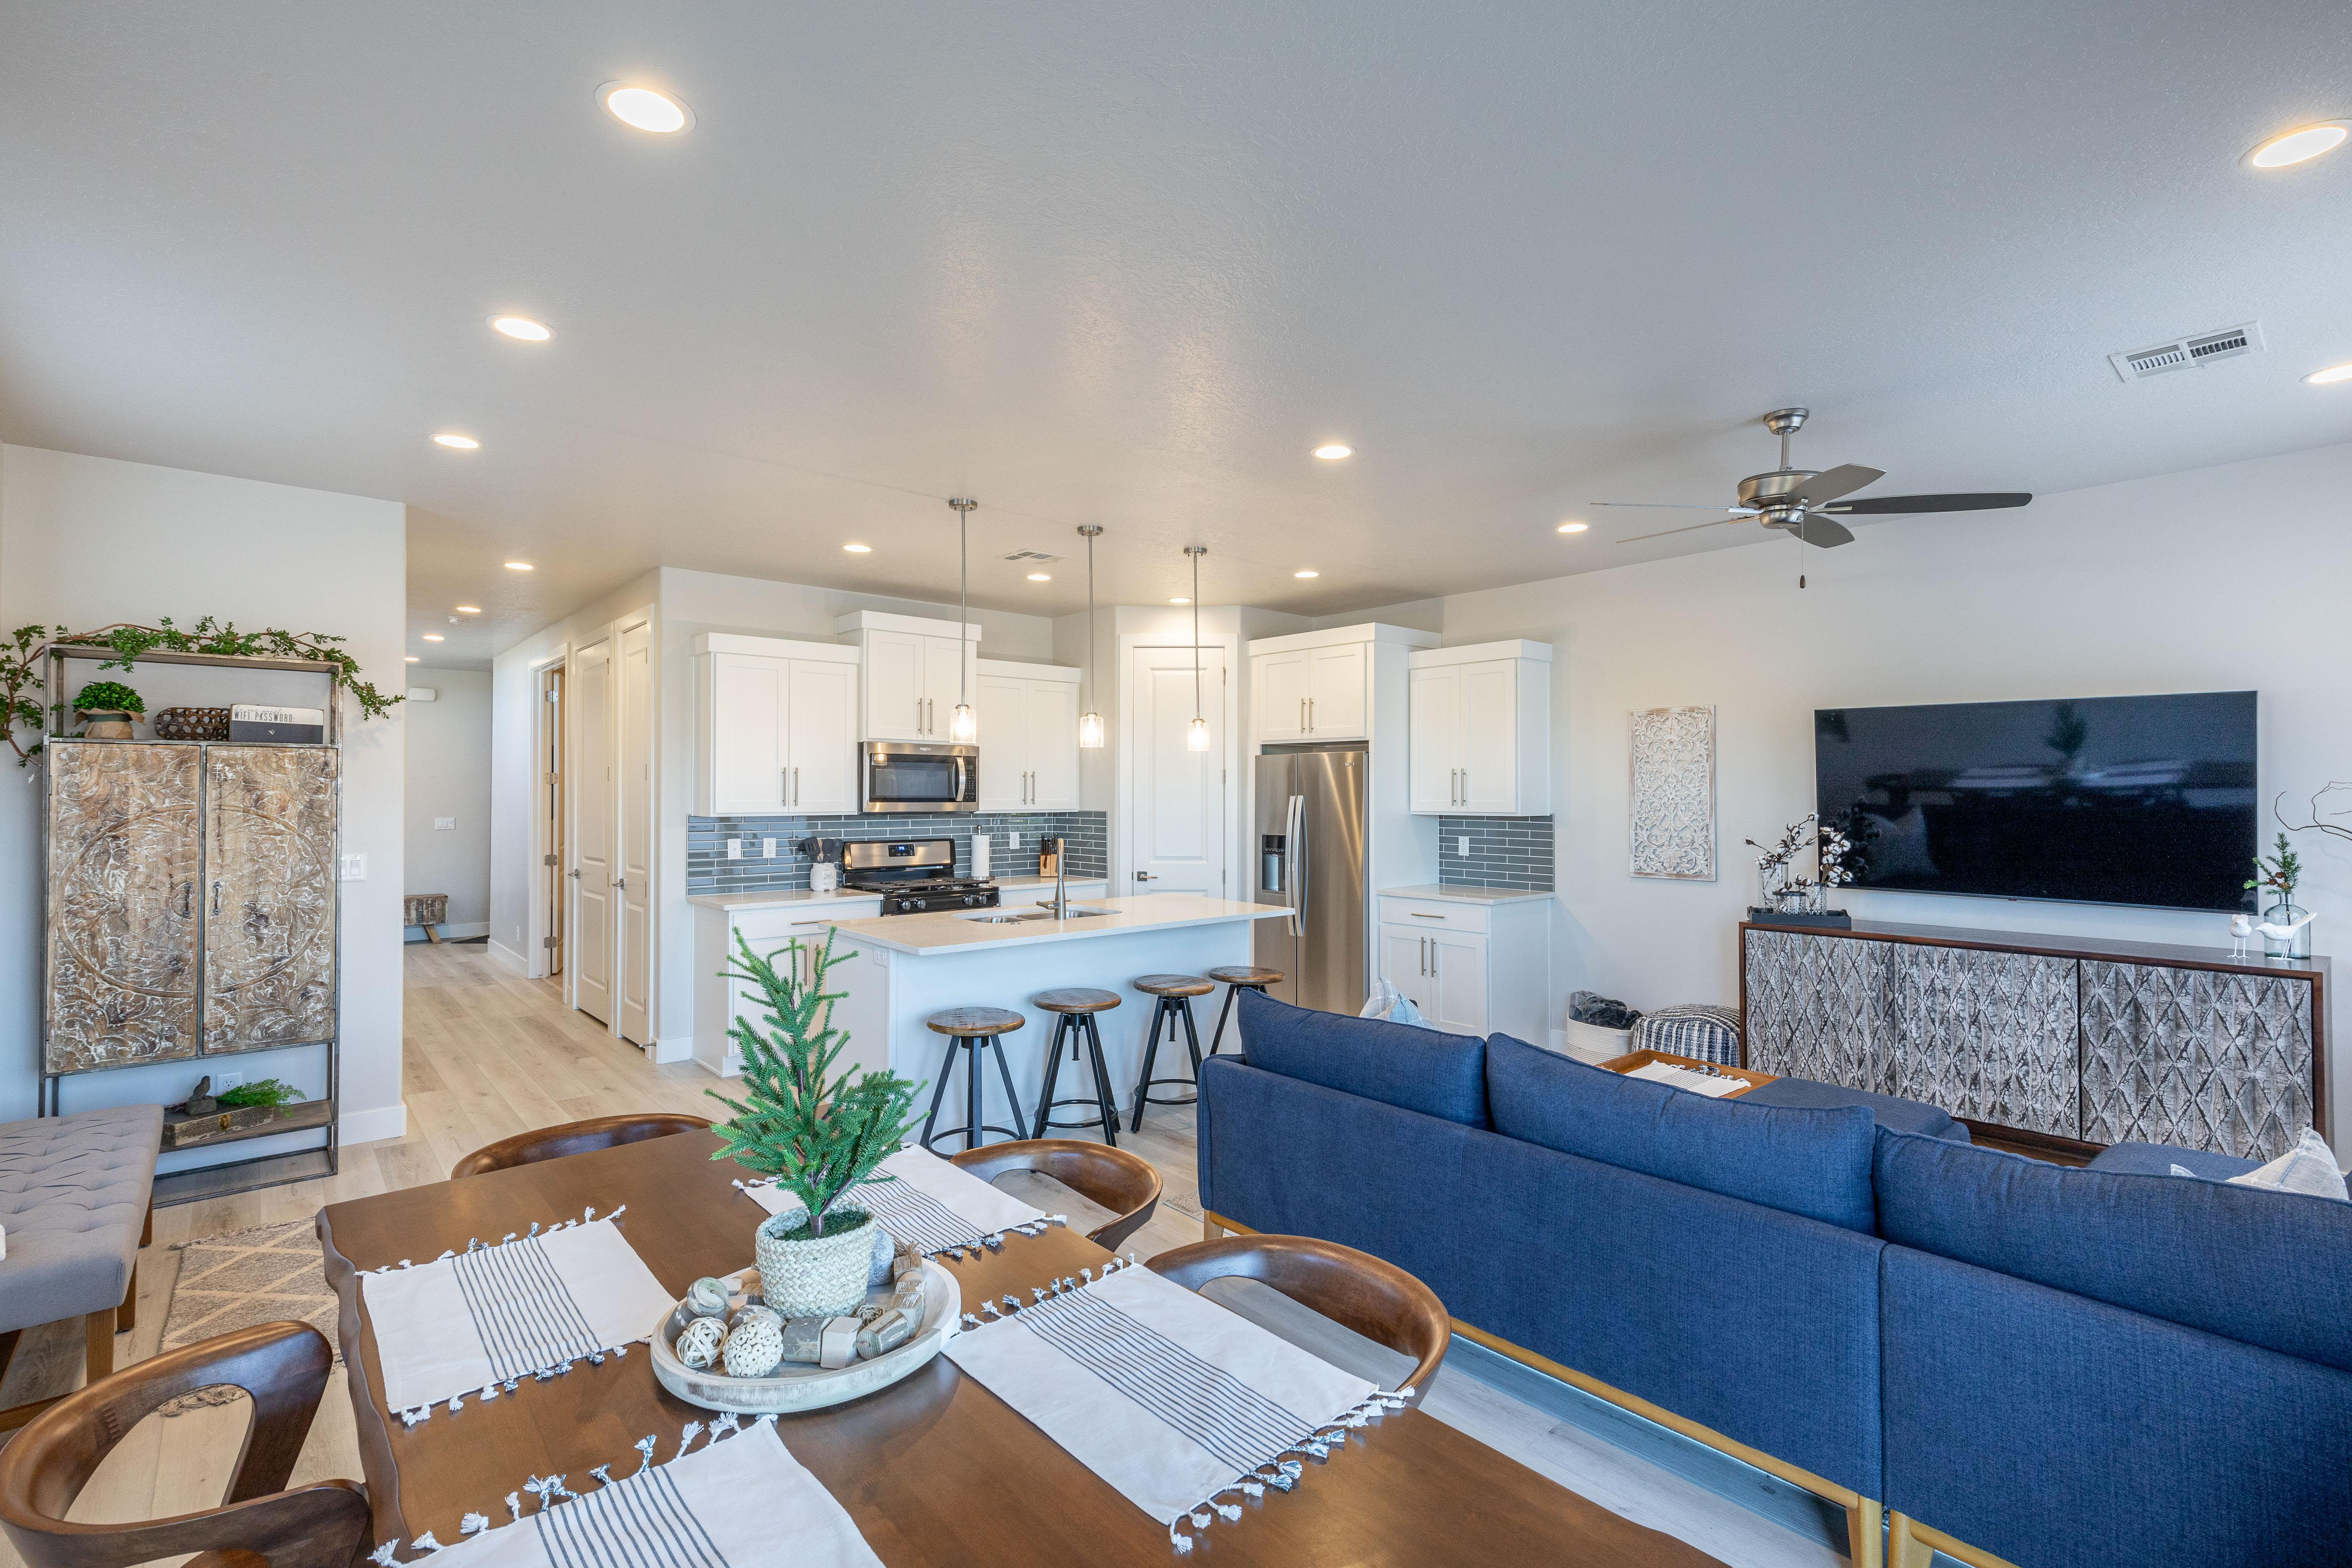 With an open and spacious floor plan, the Dining Room and Kitchen can accommodate meal preparations for groups large or small.